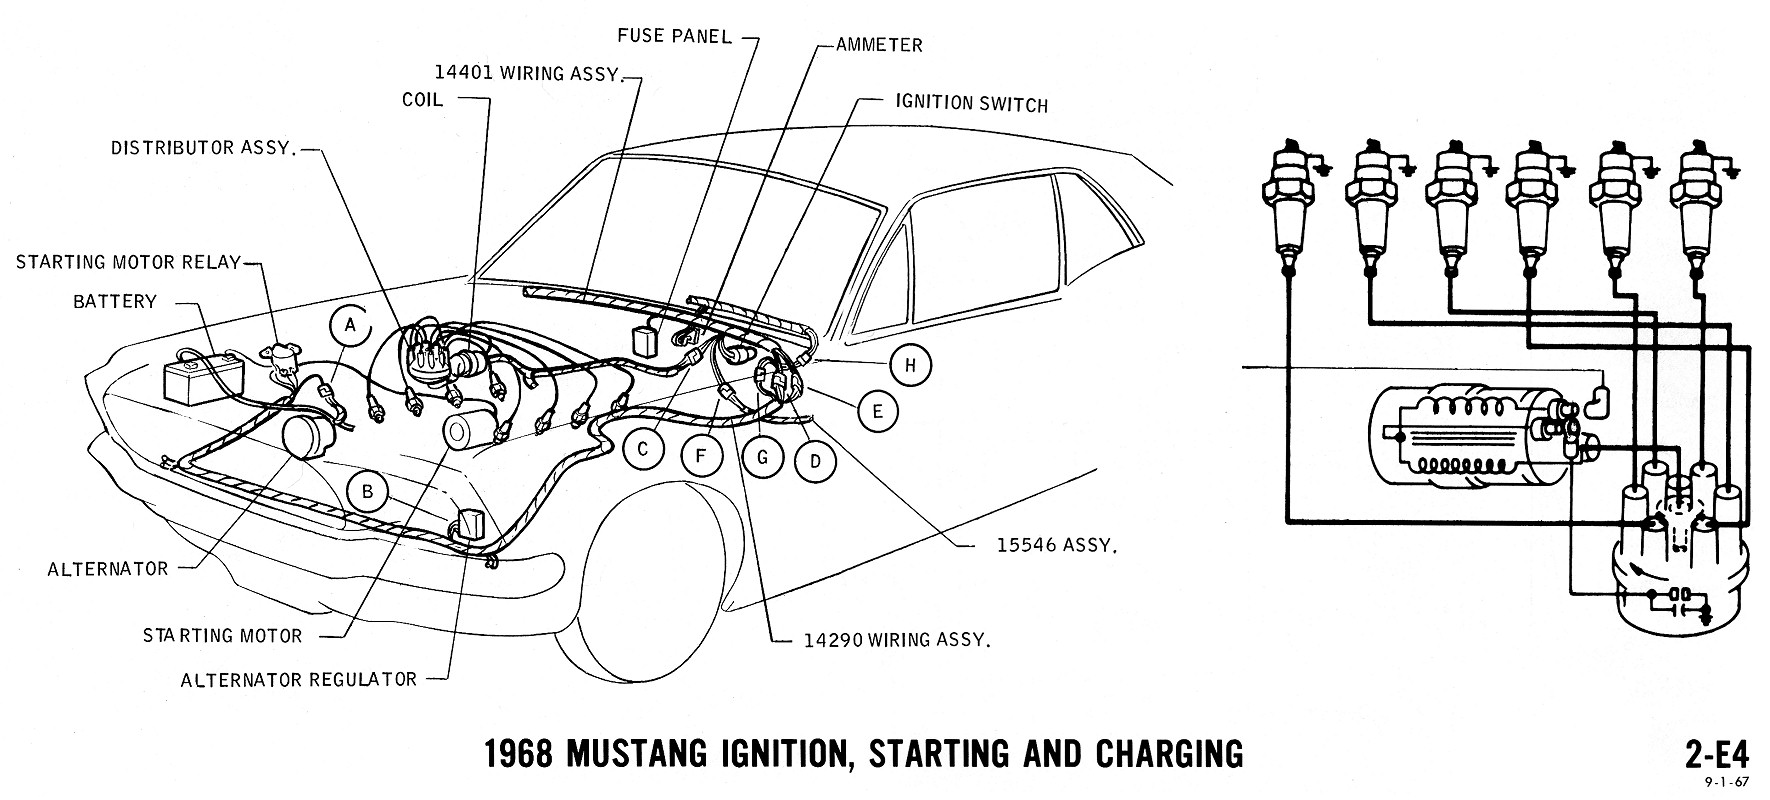 67 Impala Engine Diagram Wiring Library 1967 1968 Mustang Diagrams And Vacuum Schematics Gauge 1966 Chevy